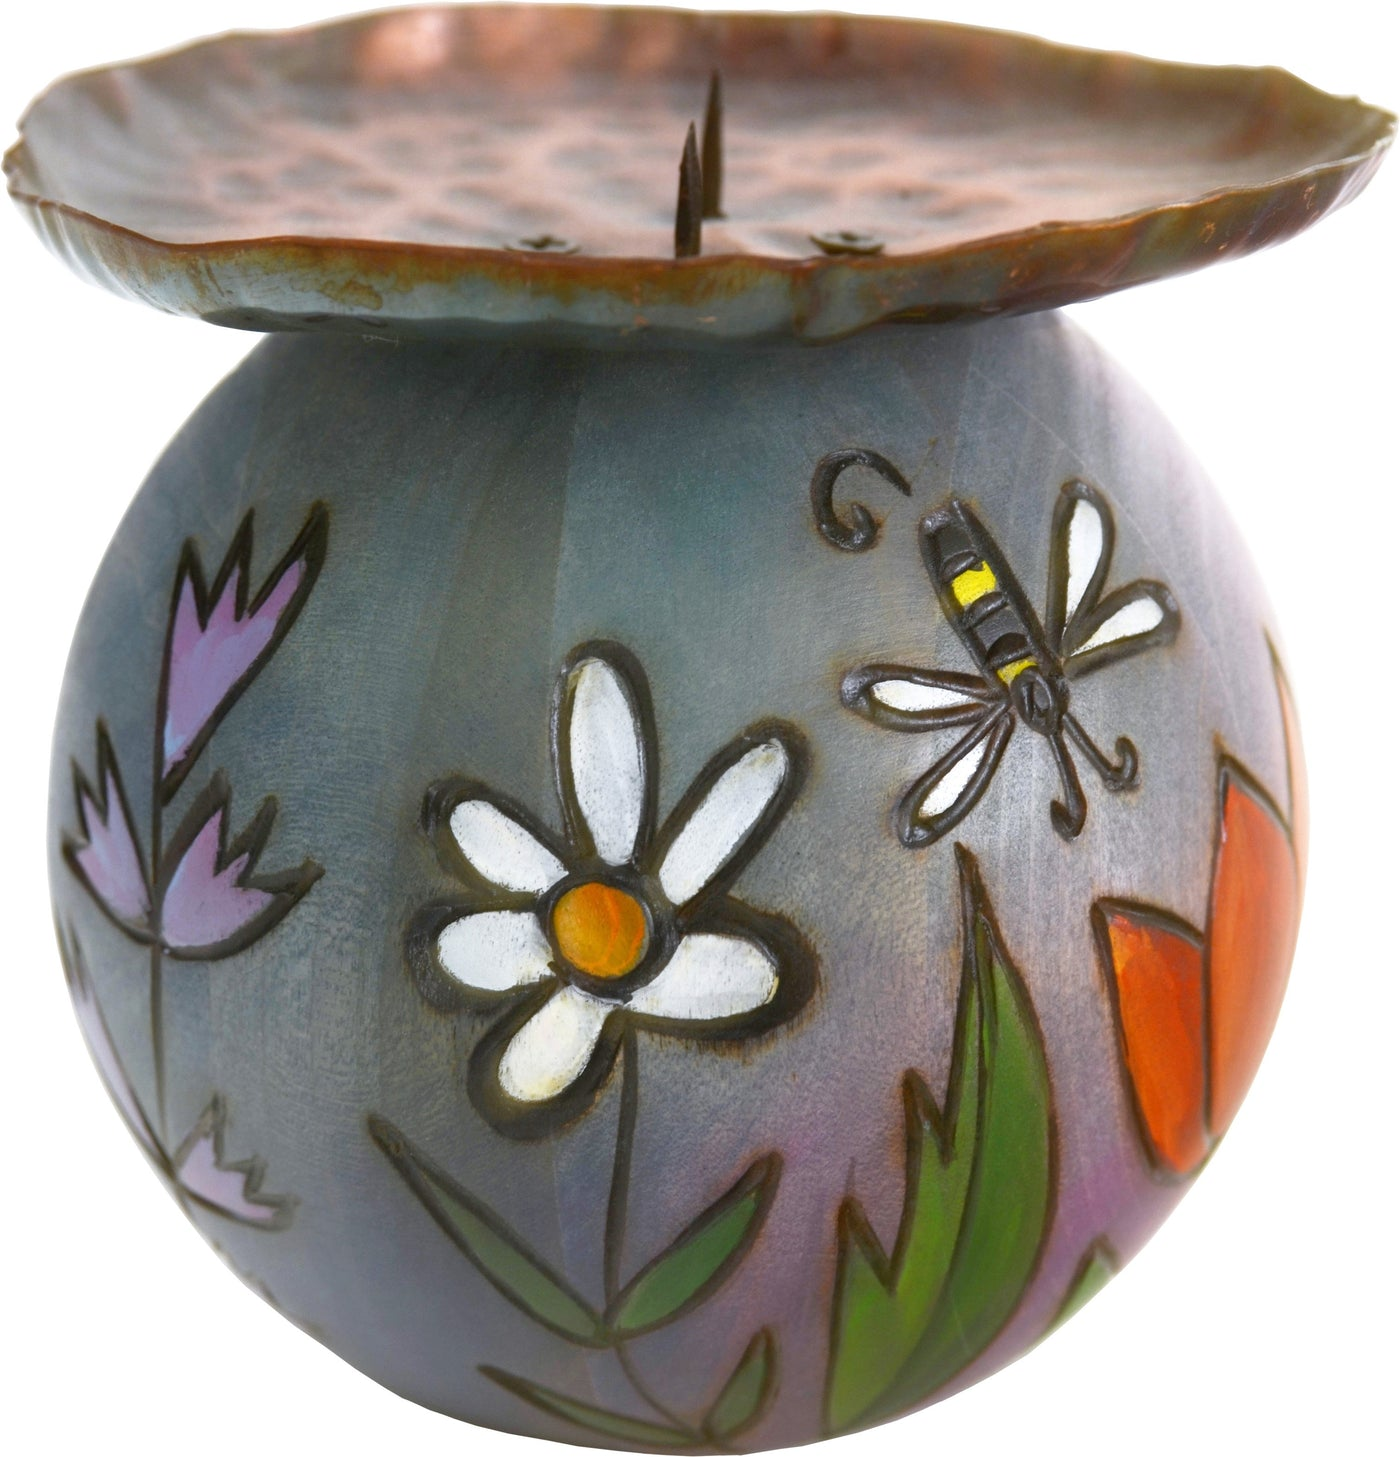 Handmade Candle Stand Designs : Handmade terrazzo candle holder posh totty designs